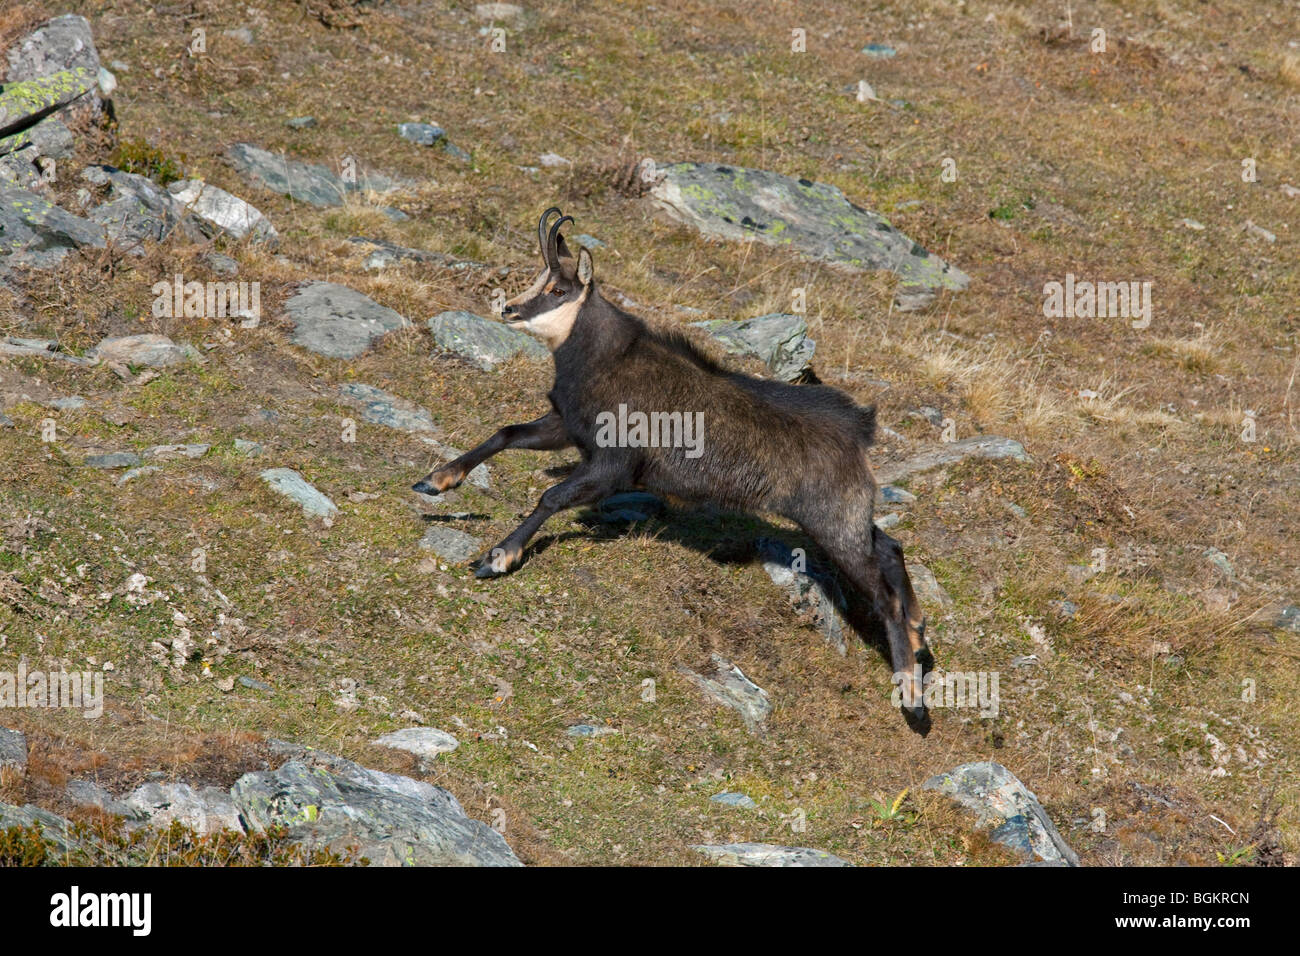 Chamois (Rupicapra rupicapra) running upwards in the Alps in autumn, Gran Paradiso National Park, Italy - Stock Image